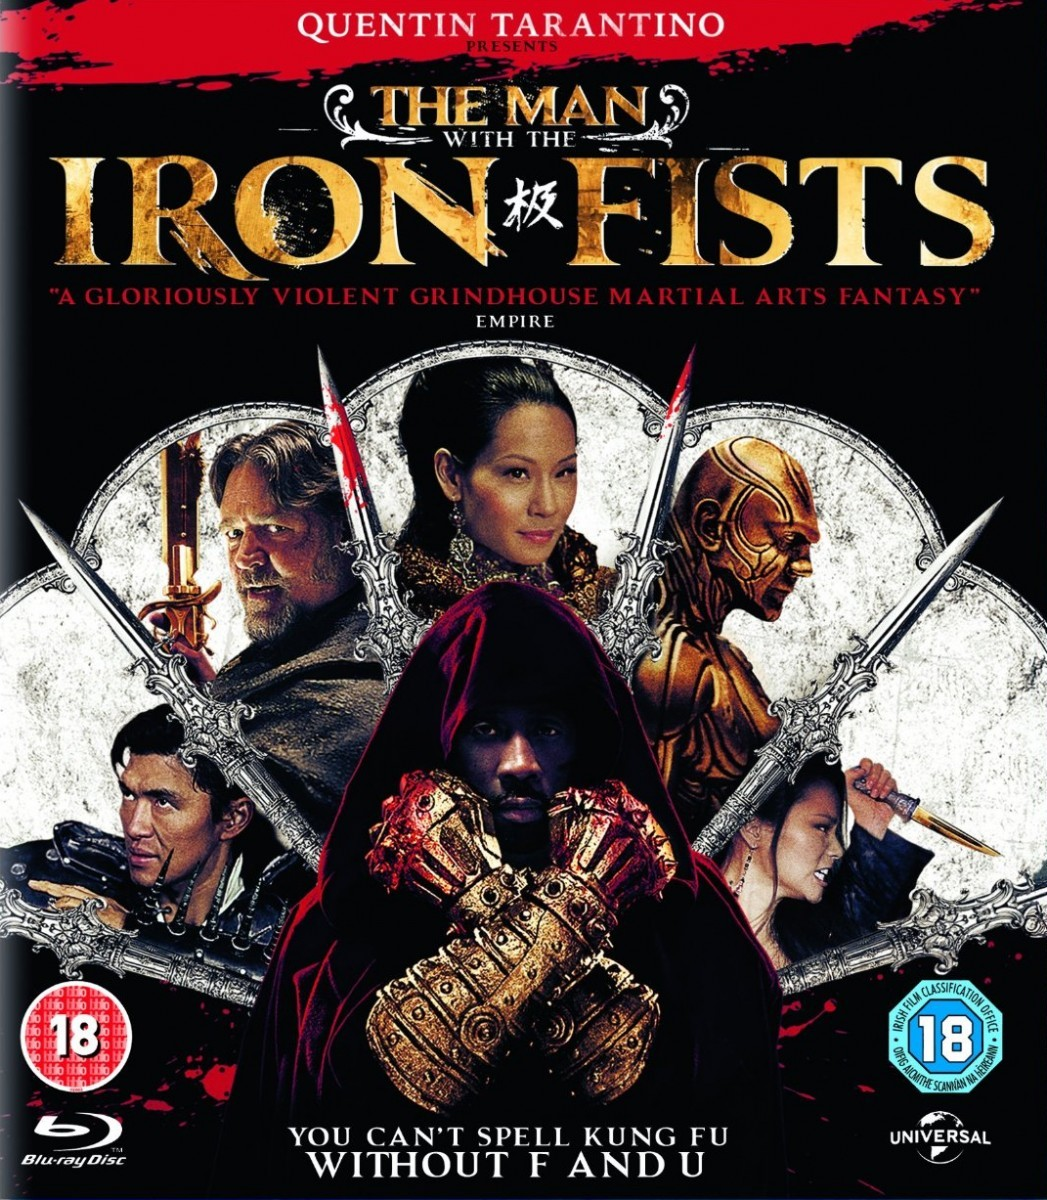 The Man With The Iron Fists Trailer: The Man With The Iron Fists [Blu-Ray]